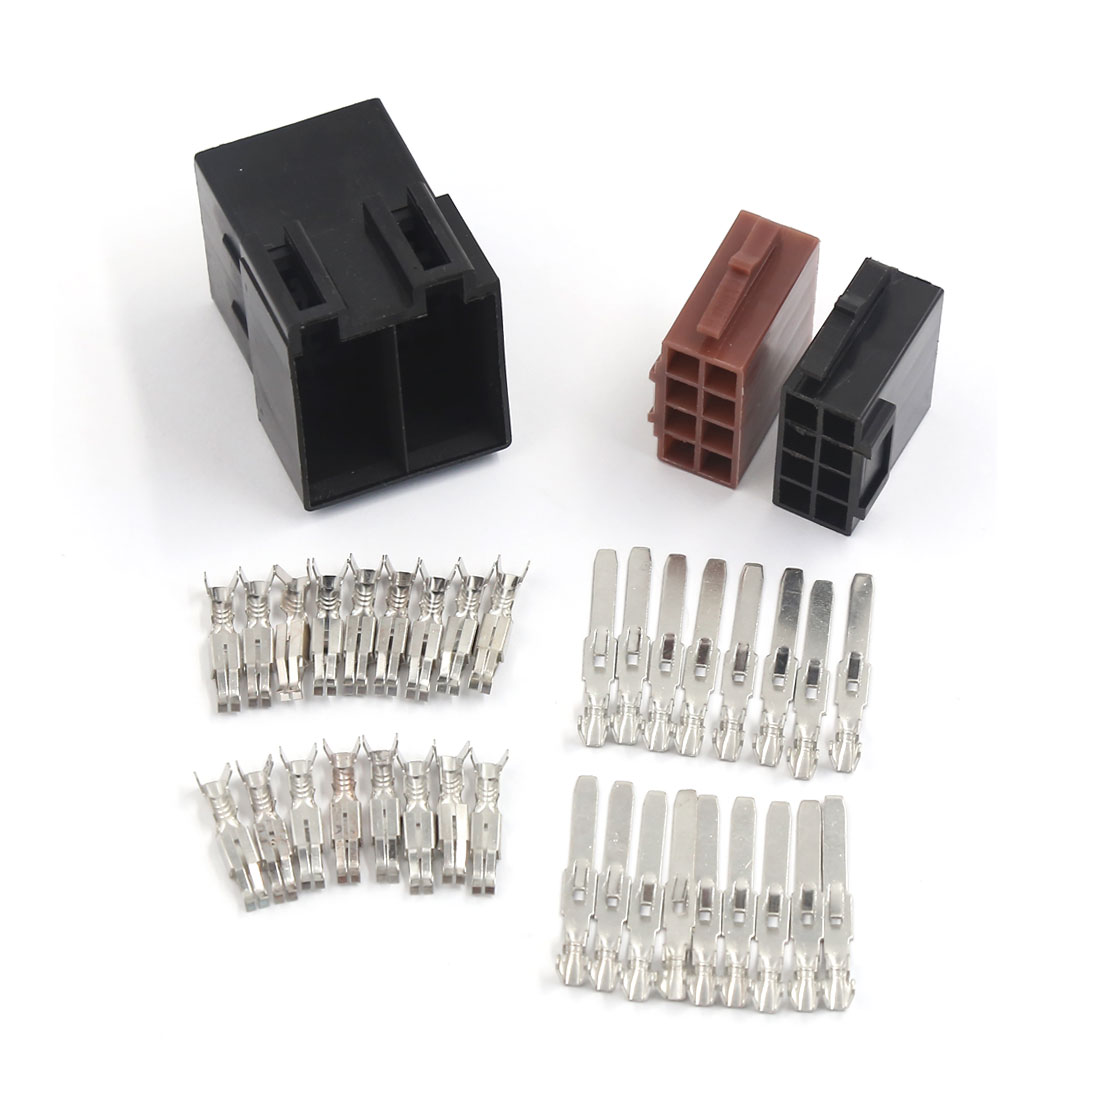 16-Pin 2.2mm Waterproof Wire Connectors Plugs for Car Auto Stereo